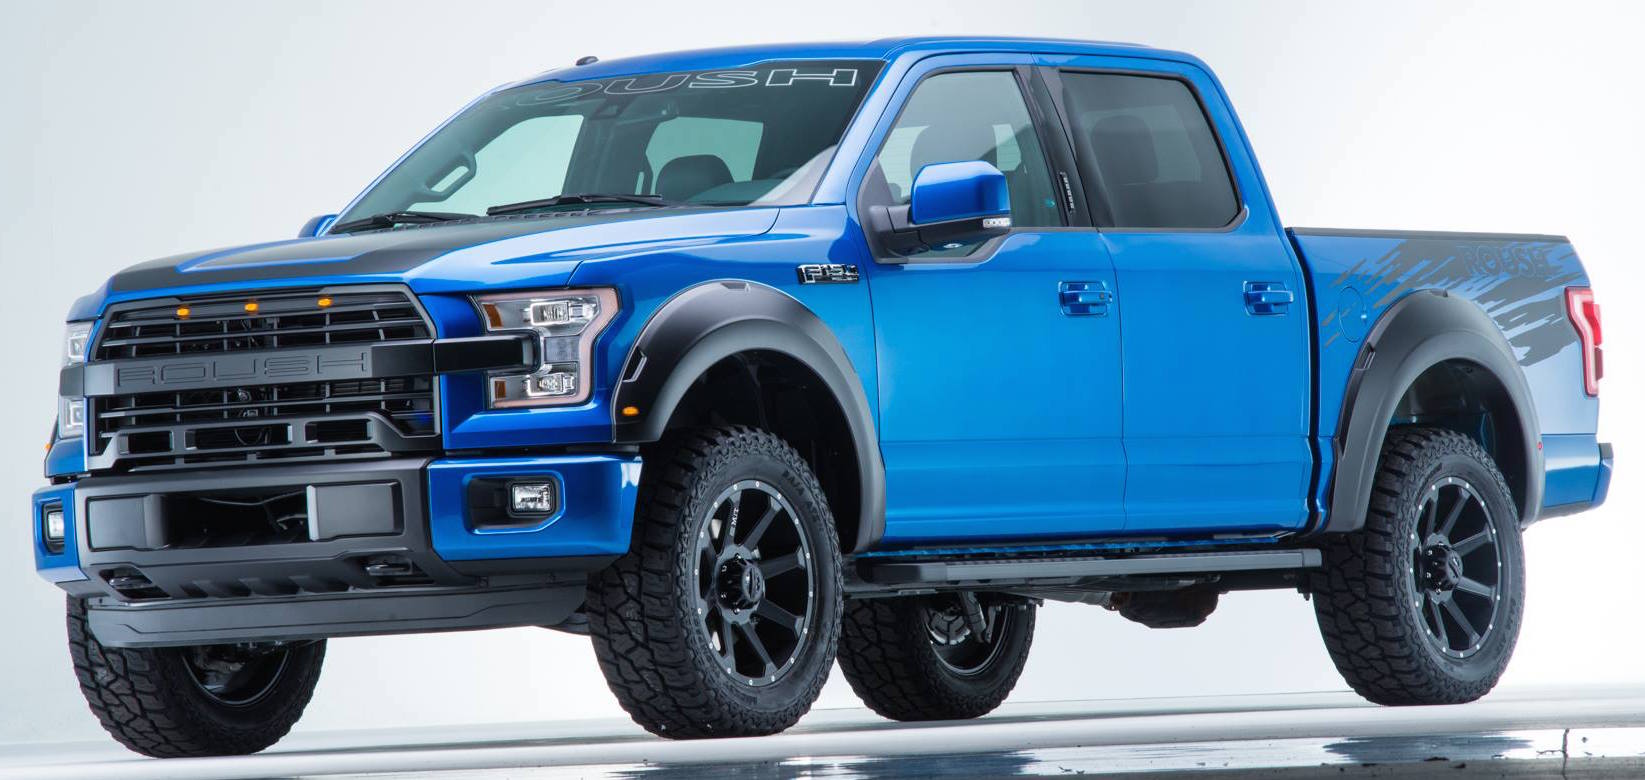 Roush F 150 In Blue Flame Metallic It S A Mean Ford